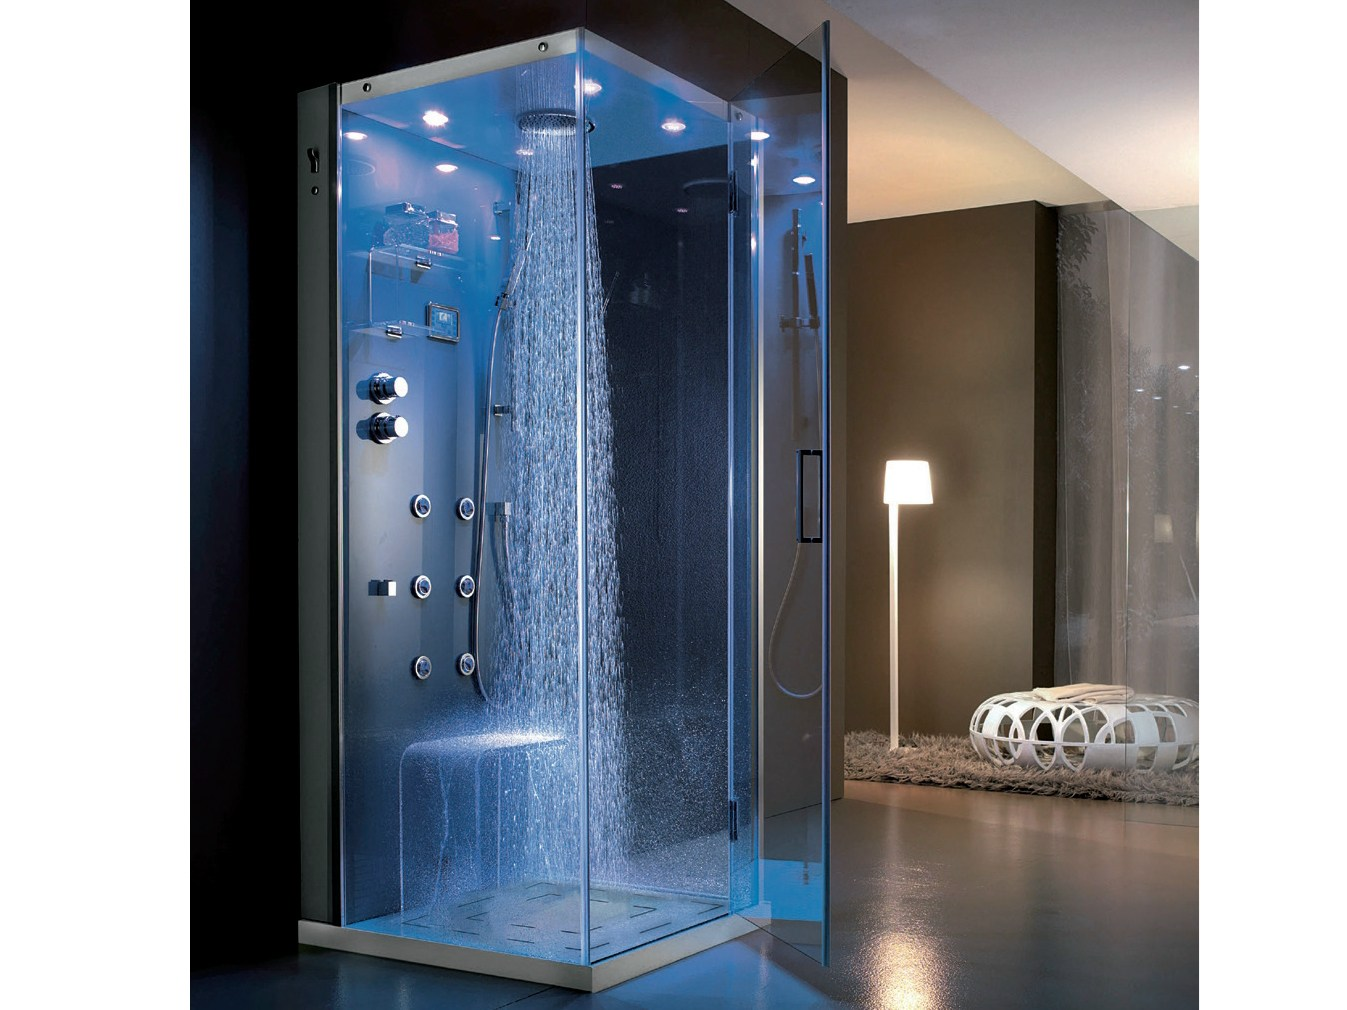 cabine de douche d 39 angle multifonction hydromassage en cristal tempo 90 x 90 by hafro. Black Bedroom Furniture Sets. Home Design Ideas